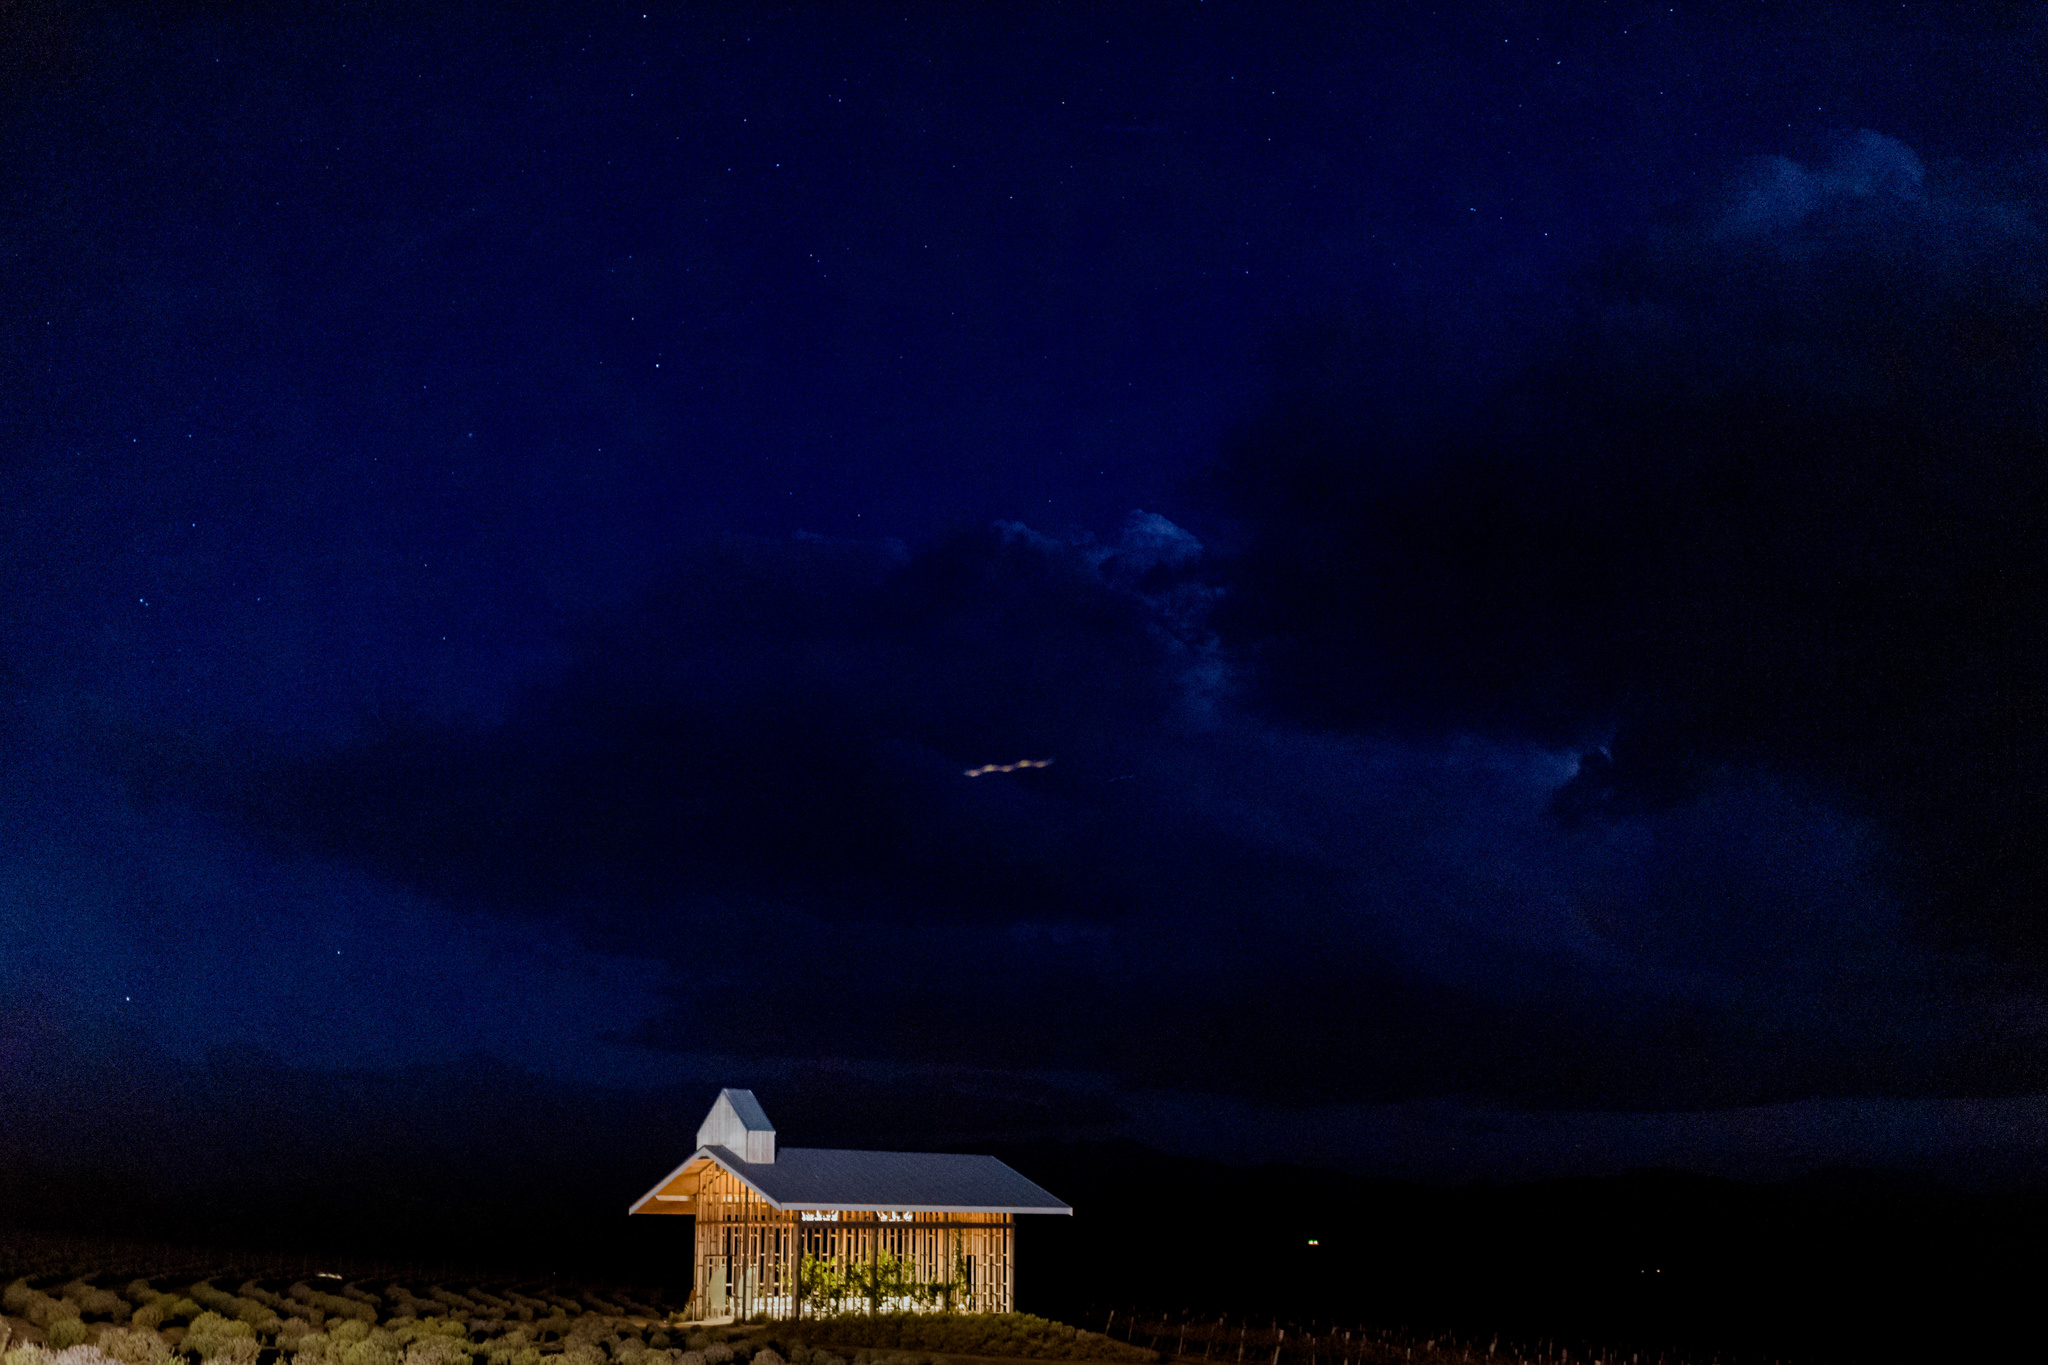 Kooroomba Chapel is lit up against the dark night sky and surrounding fields.